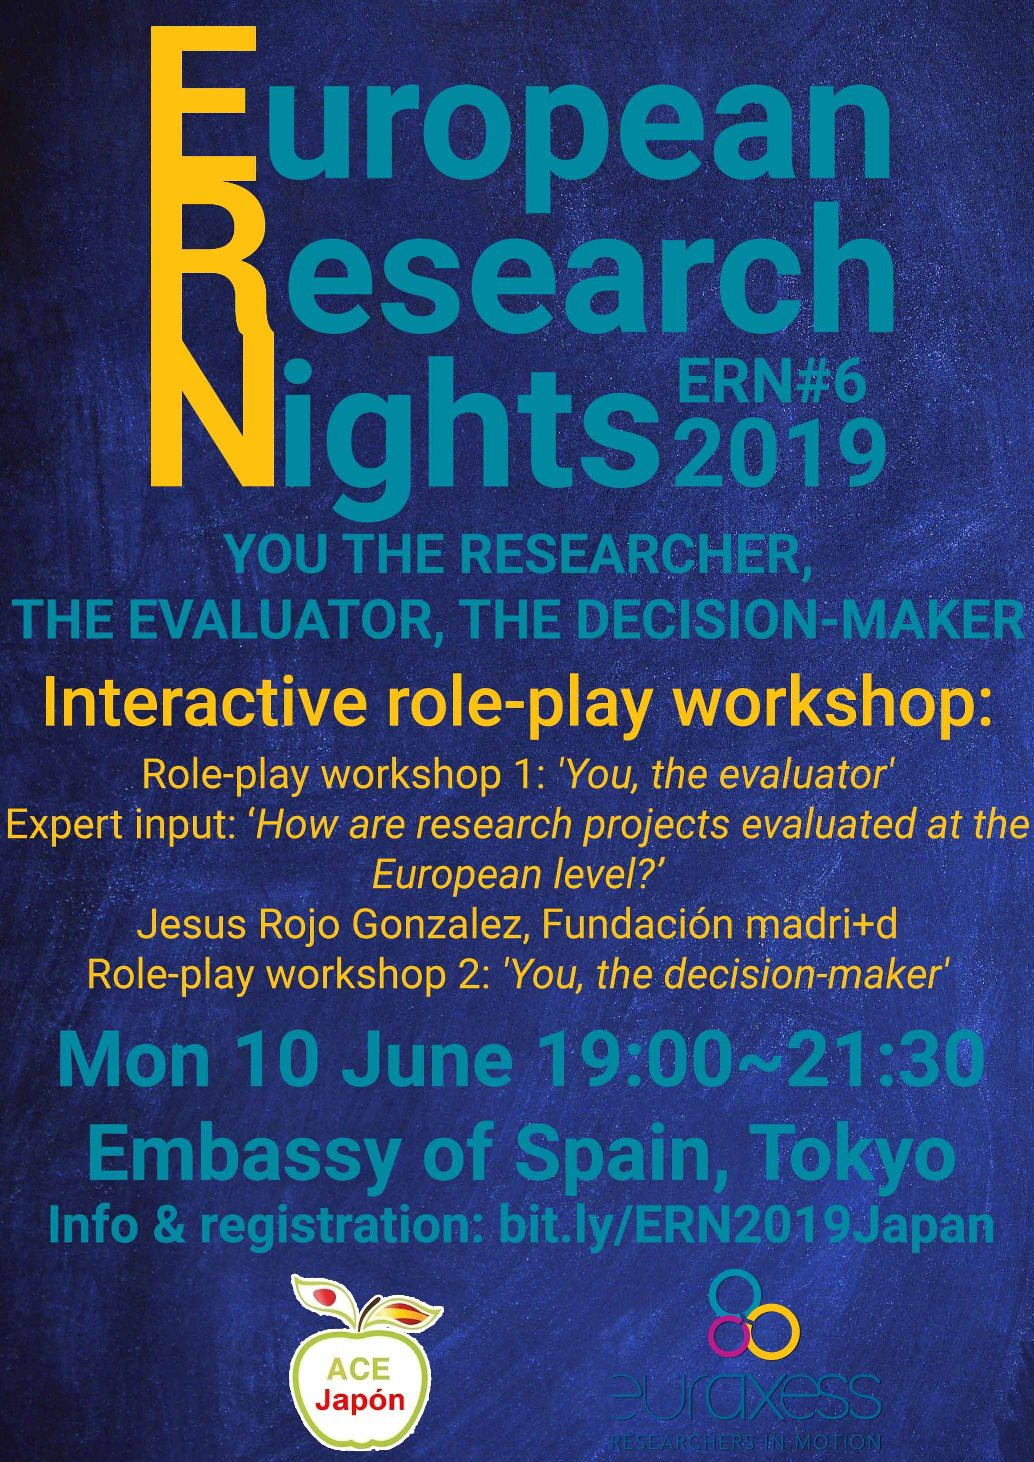 European Research Nights 2019 #6: You the researcher, the evaluator, the decision-maker